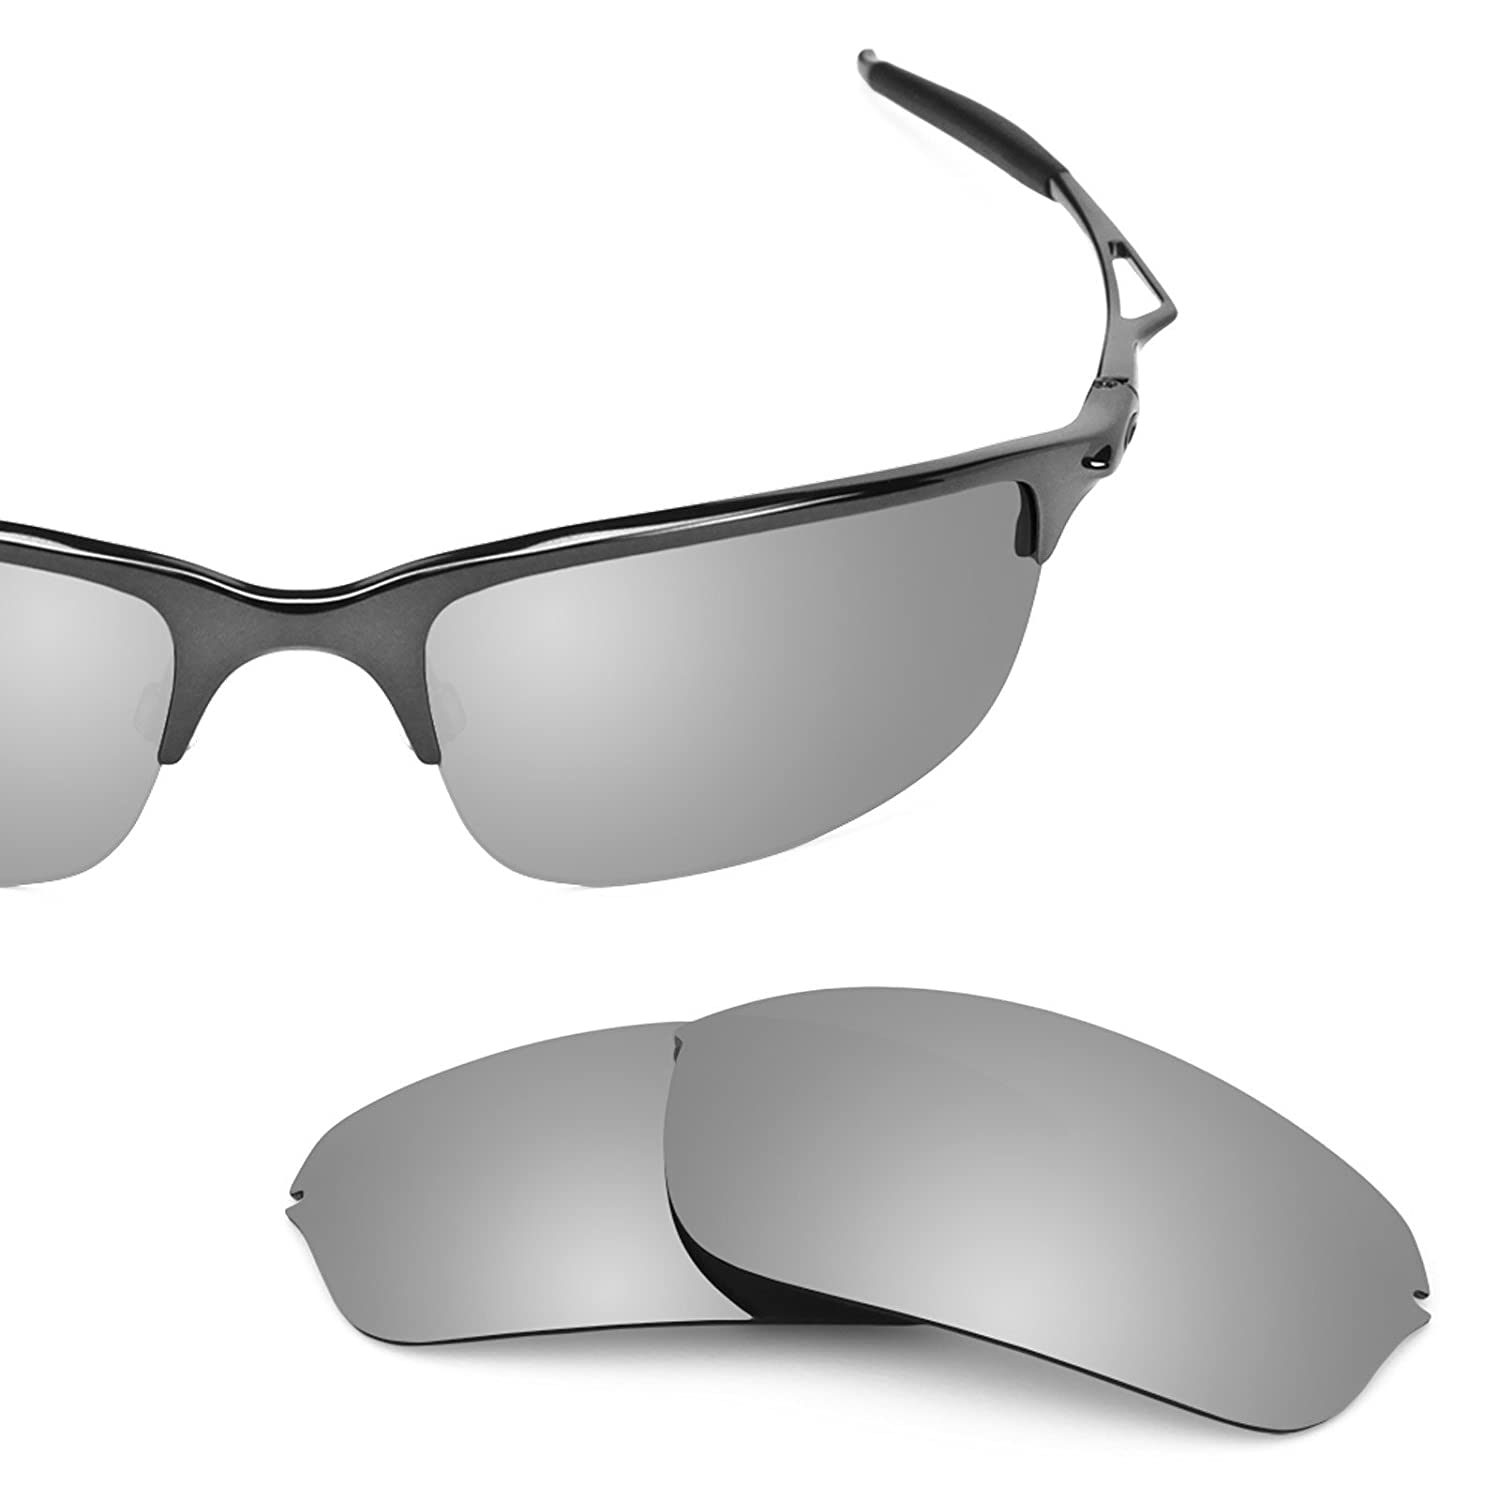 a081d20ae5 Revant Replacement Lenses for Oakley Half Wire 2.0 4 Pair Combo Pack K018   Amazon.co.uk  Clothing